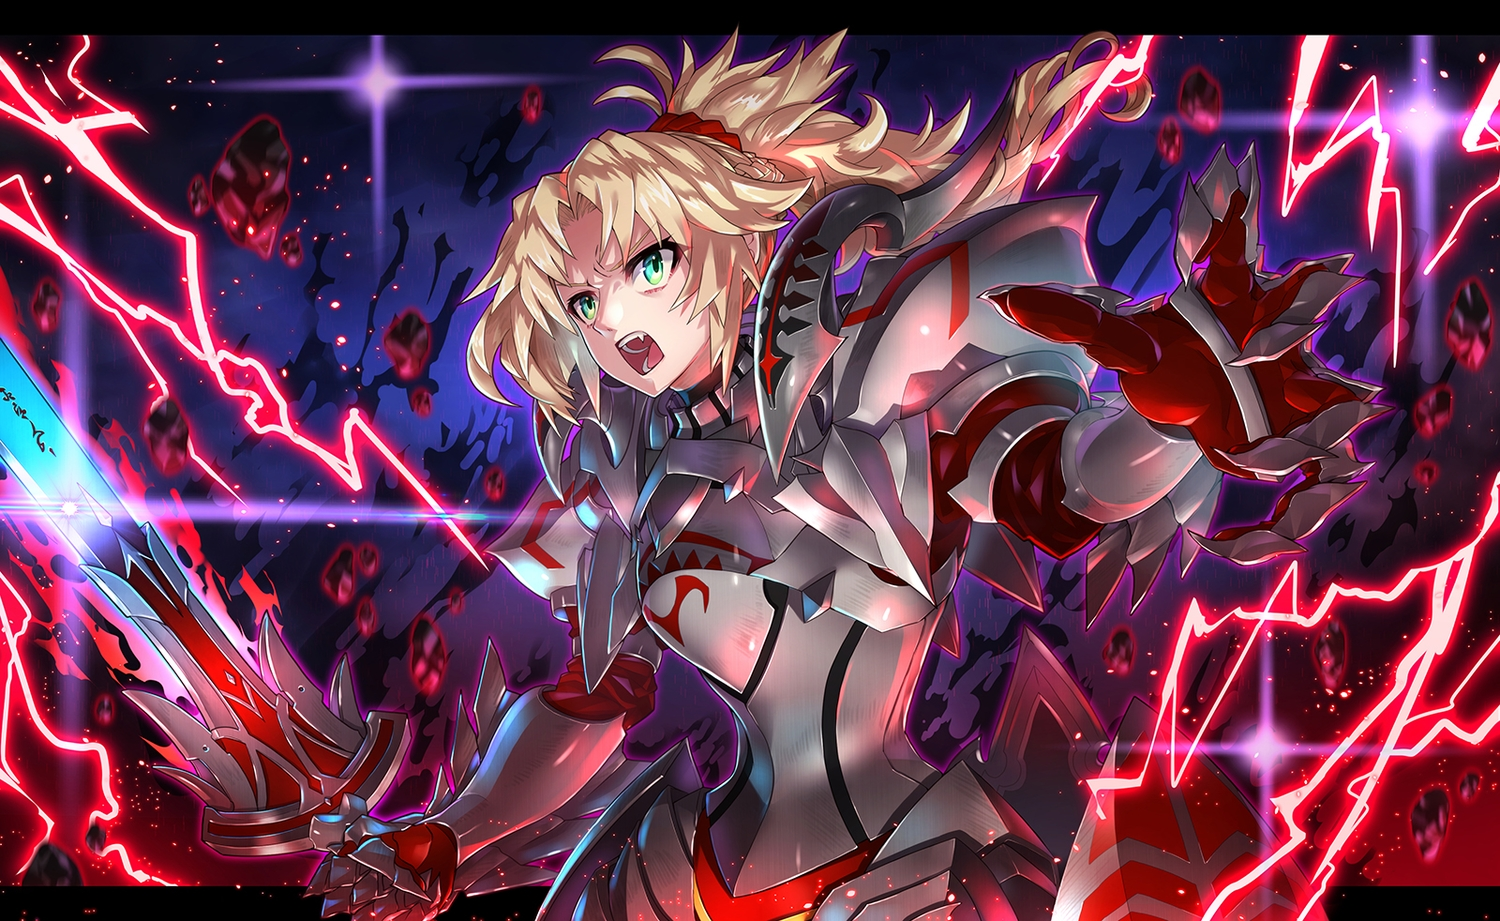 armor blonde_hair braids fate/apocrypha fate/grand_order fate_(series) green_eyes mordred ponytail short_hair sword toshi_gahara weapon